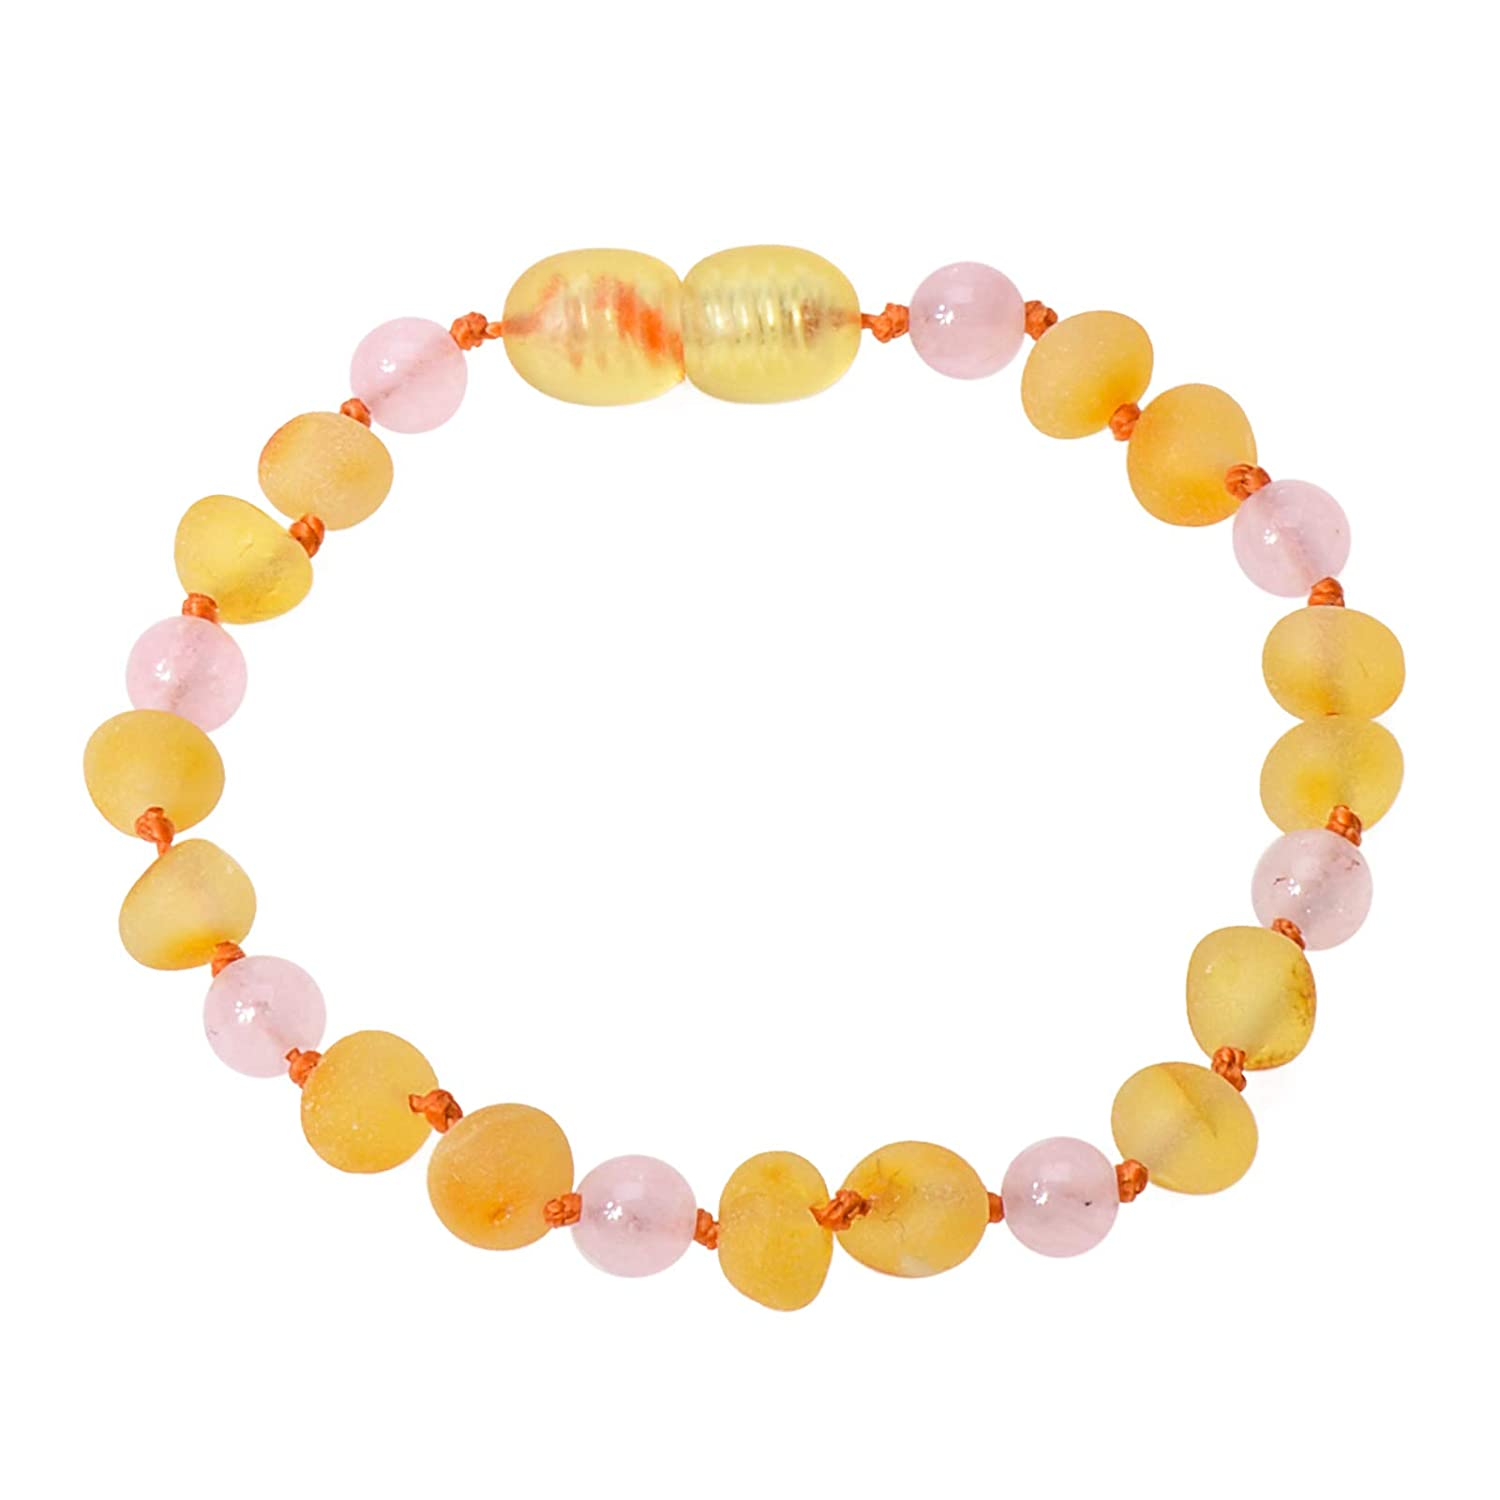 Dark Cognac, 4.7 inches with Plastic Screw Clasp Knotted Between Beads Vintage Amber Genuine Amber Raw Not Polished 100/% Natural Baltic Amber Beads Baby Unisex Teething Anklet//Bracelet